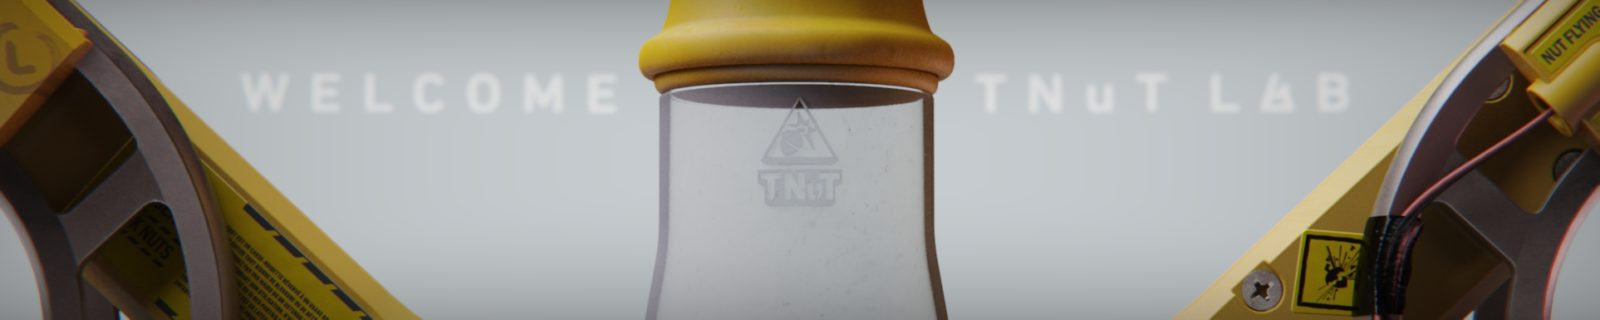 Born from the match of a 'nut' inventor and a genius designer, the TNuT nutcracker is 100% made in France, as fun and easy to use as to share. Try it U will love it !